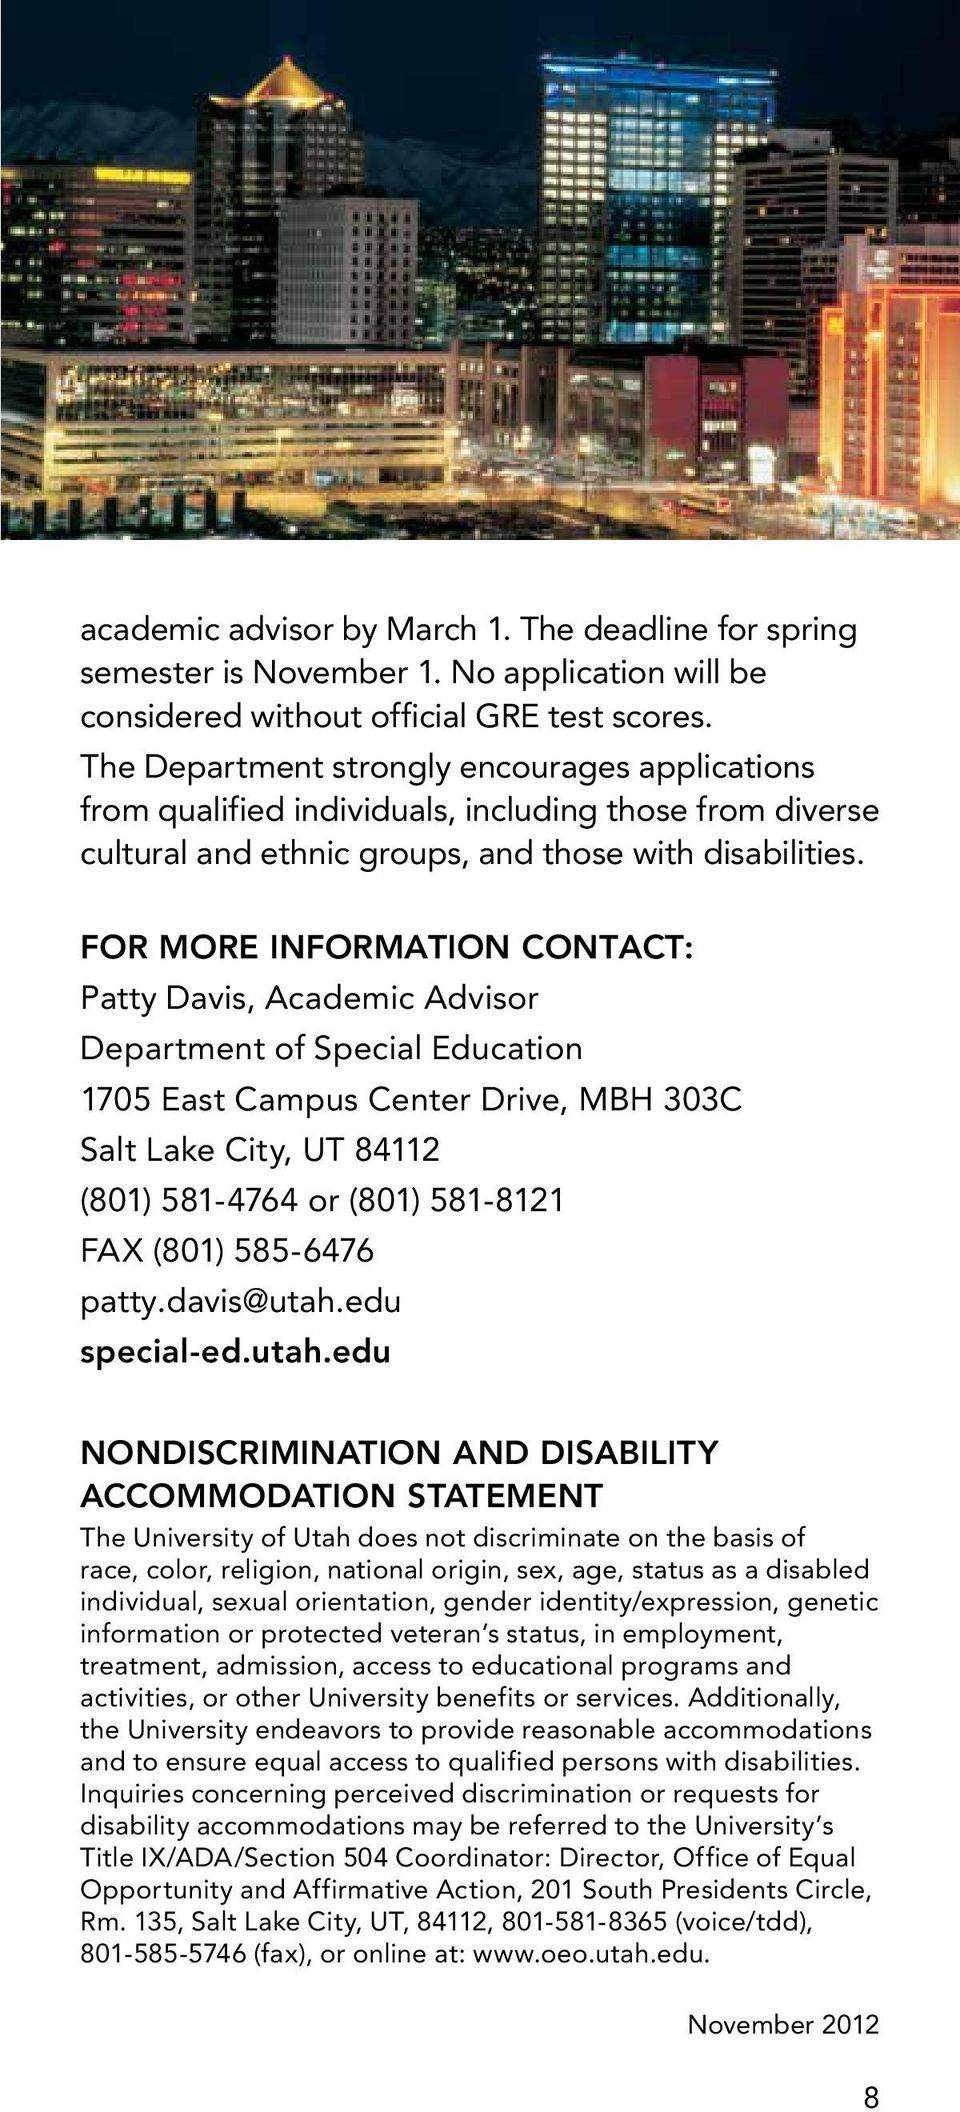 FOR MORE INFORMATION CONTACT: Patty Davis, Academic Advisor Department of Special Education 1705 East Campus Center Drive, MBH 303C Salt Lake City, UT 84112 (801) 581-4764 or (801) 581-8121 FAX (801)